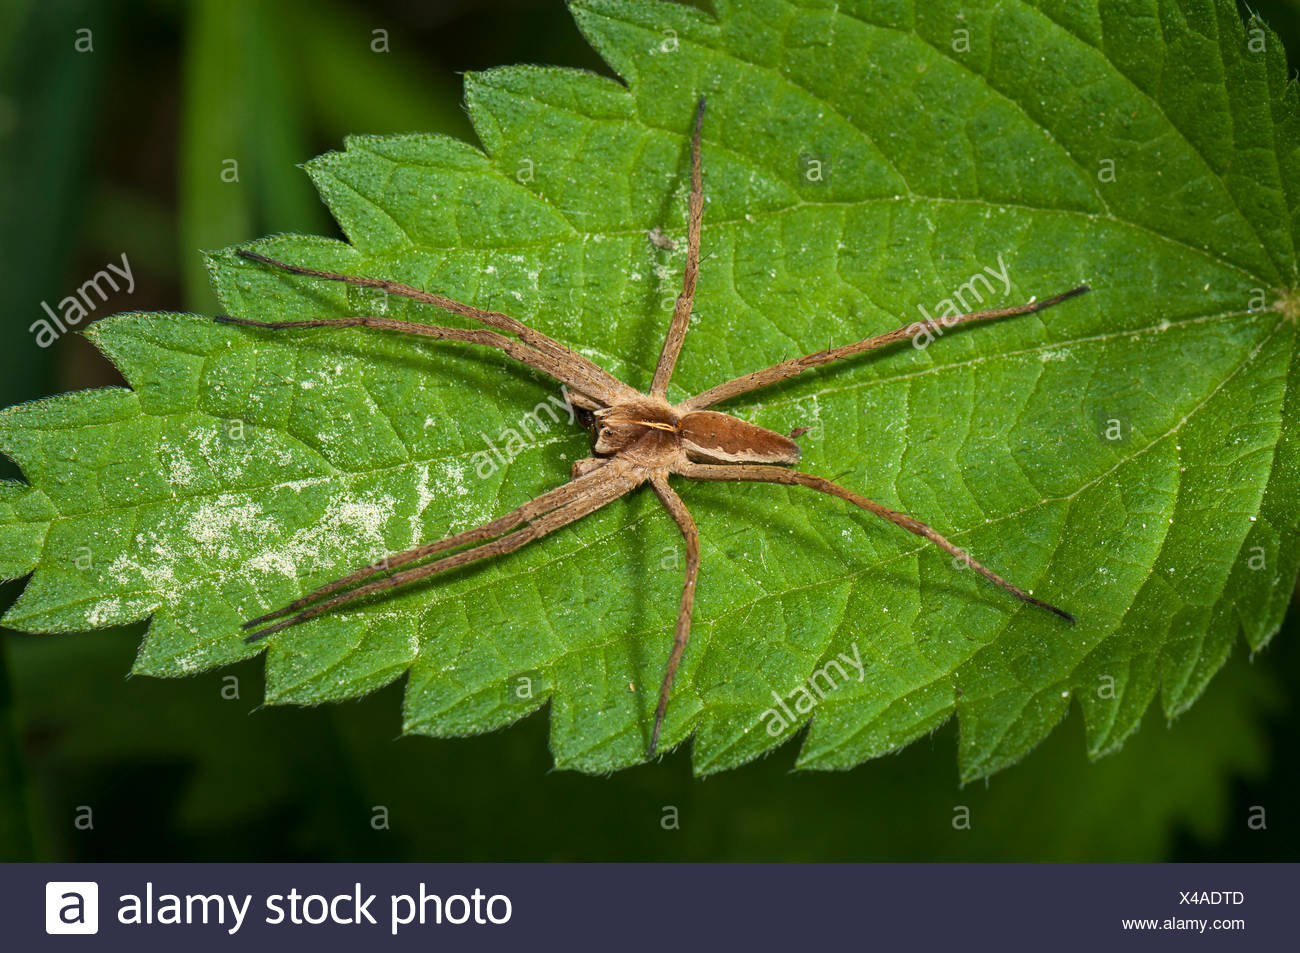 Nursery web spider species (Pisaura mirabilis) on Stinging Nettle (Urtica dioica), Mönchbruch Nature Reserve, Mörfelden, Hesse - Stock Image